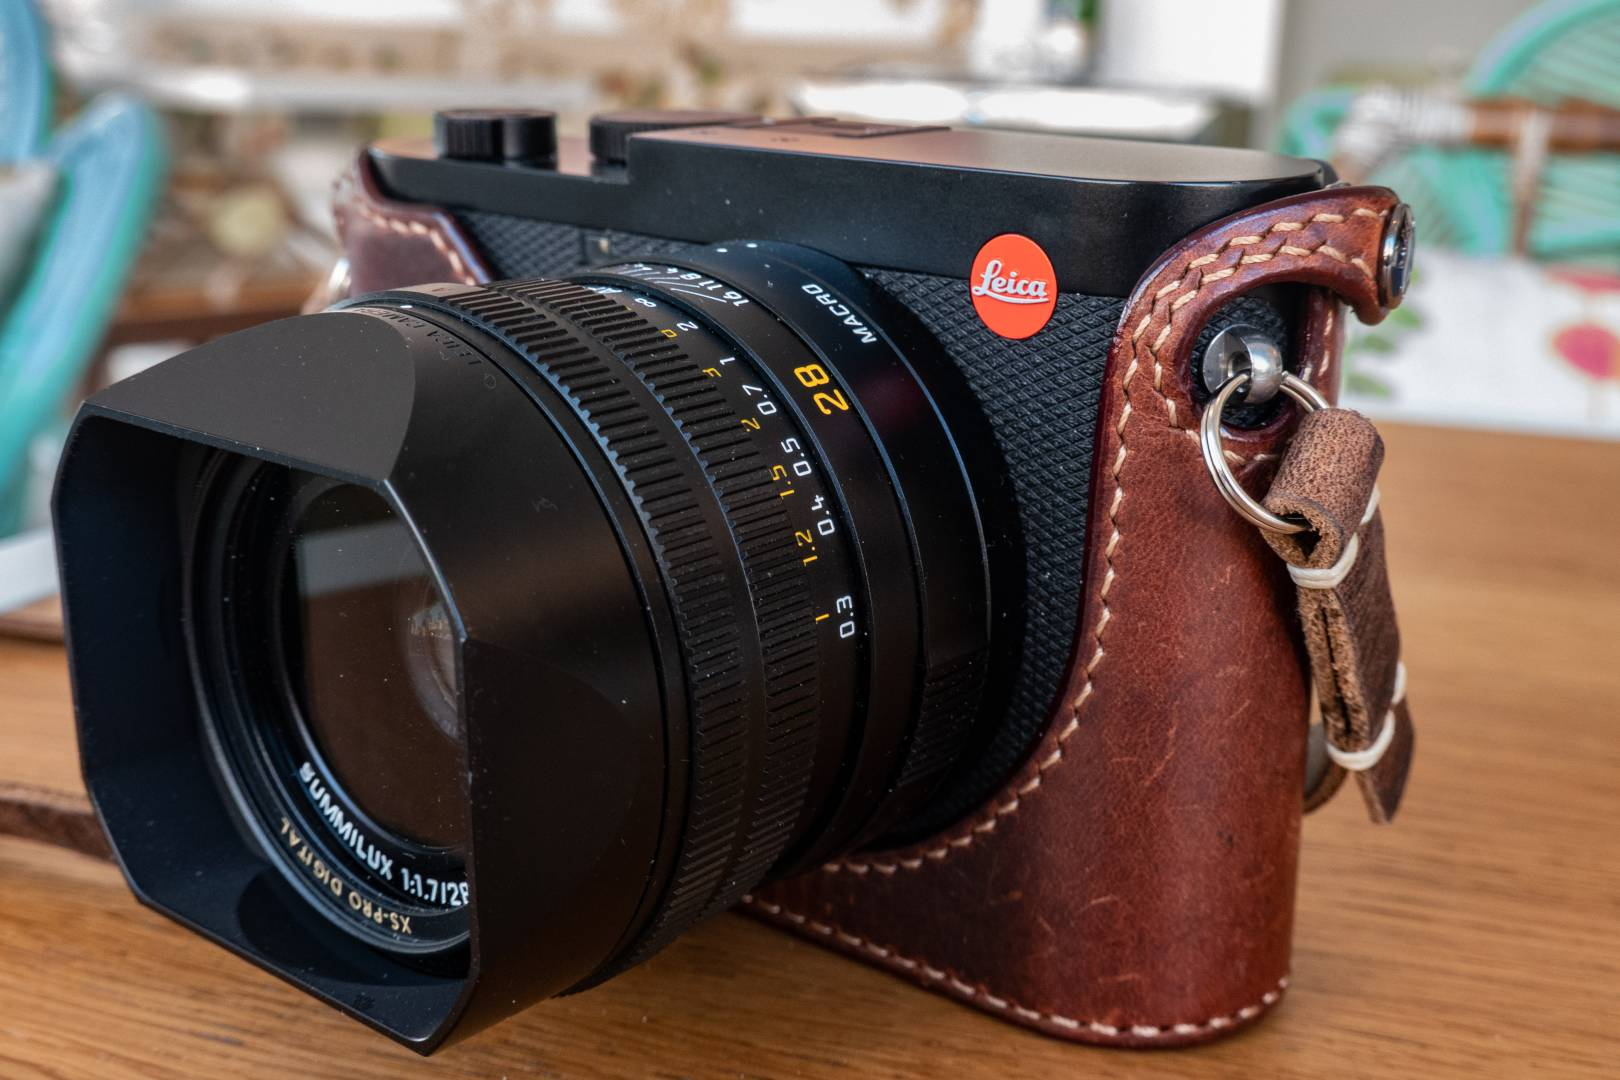 The Leica Q and, here, the Q2 (with it's custom-made Arte di Mano halfcase) are wonderful travel cameras. But they are quite bulky, especially in the lens department. And how often will you shoot street photography at f/1.7?